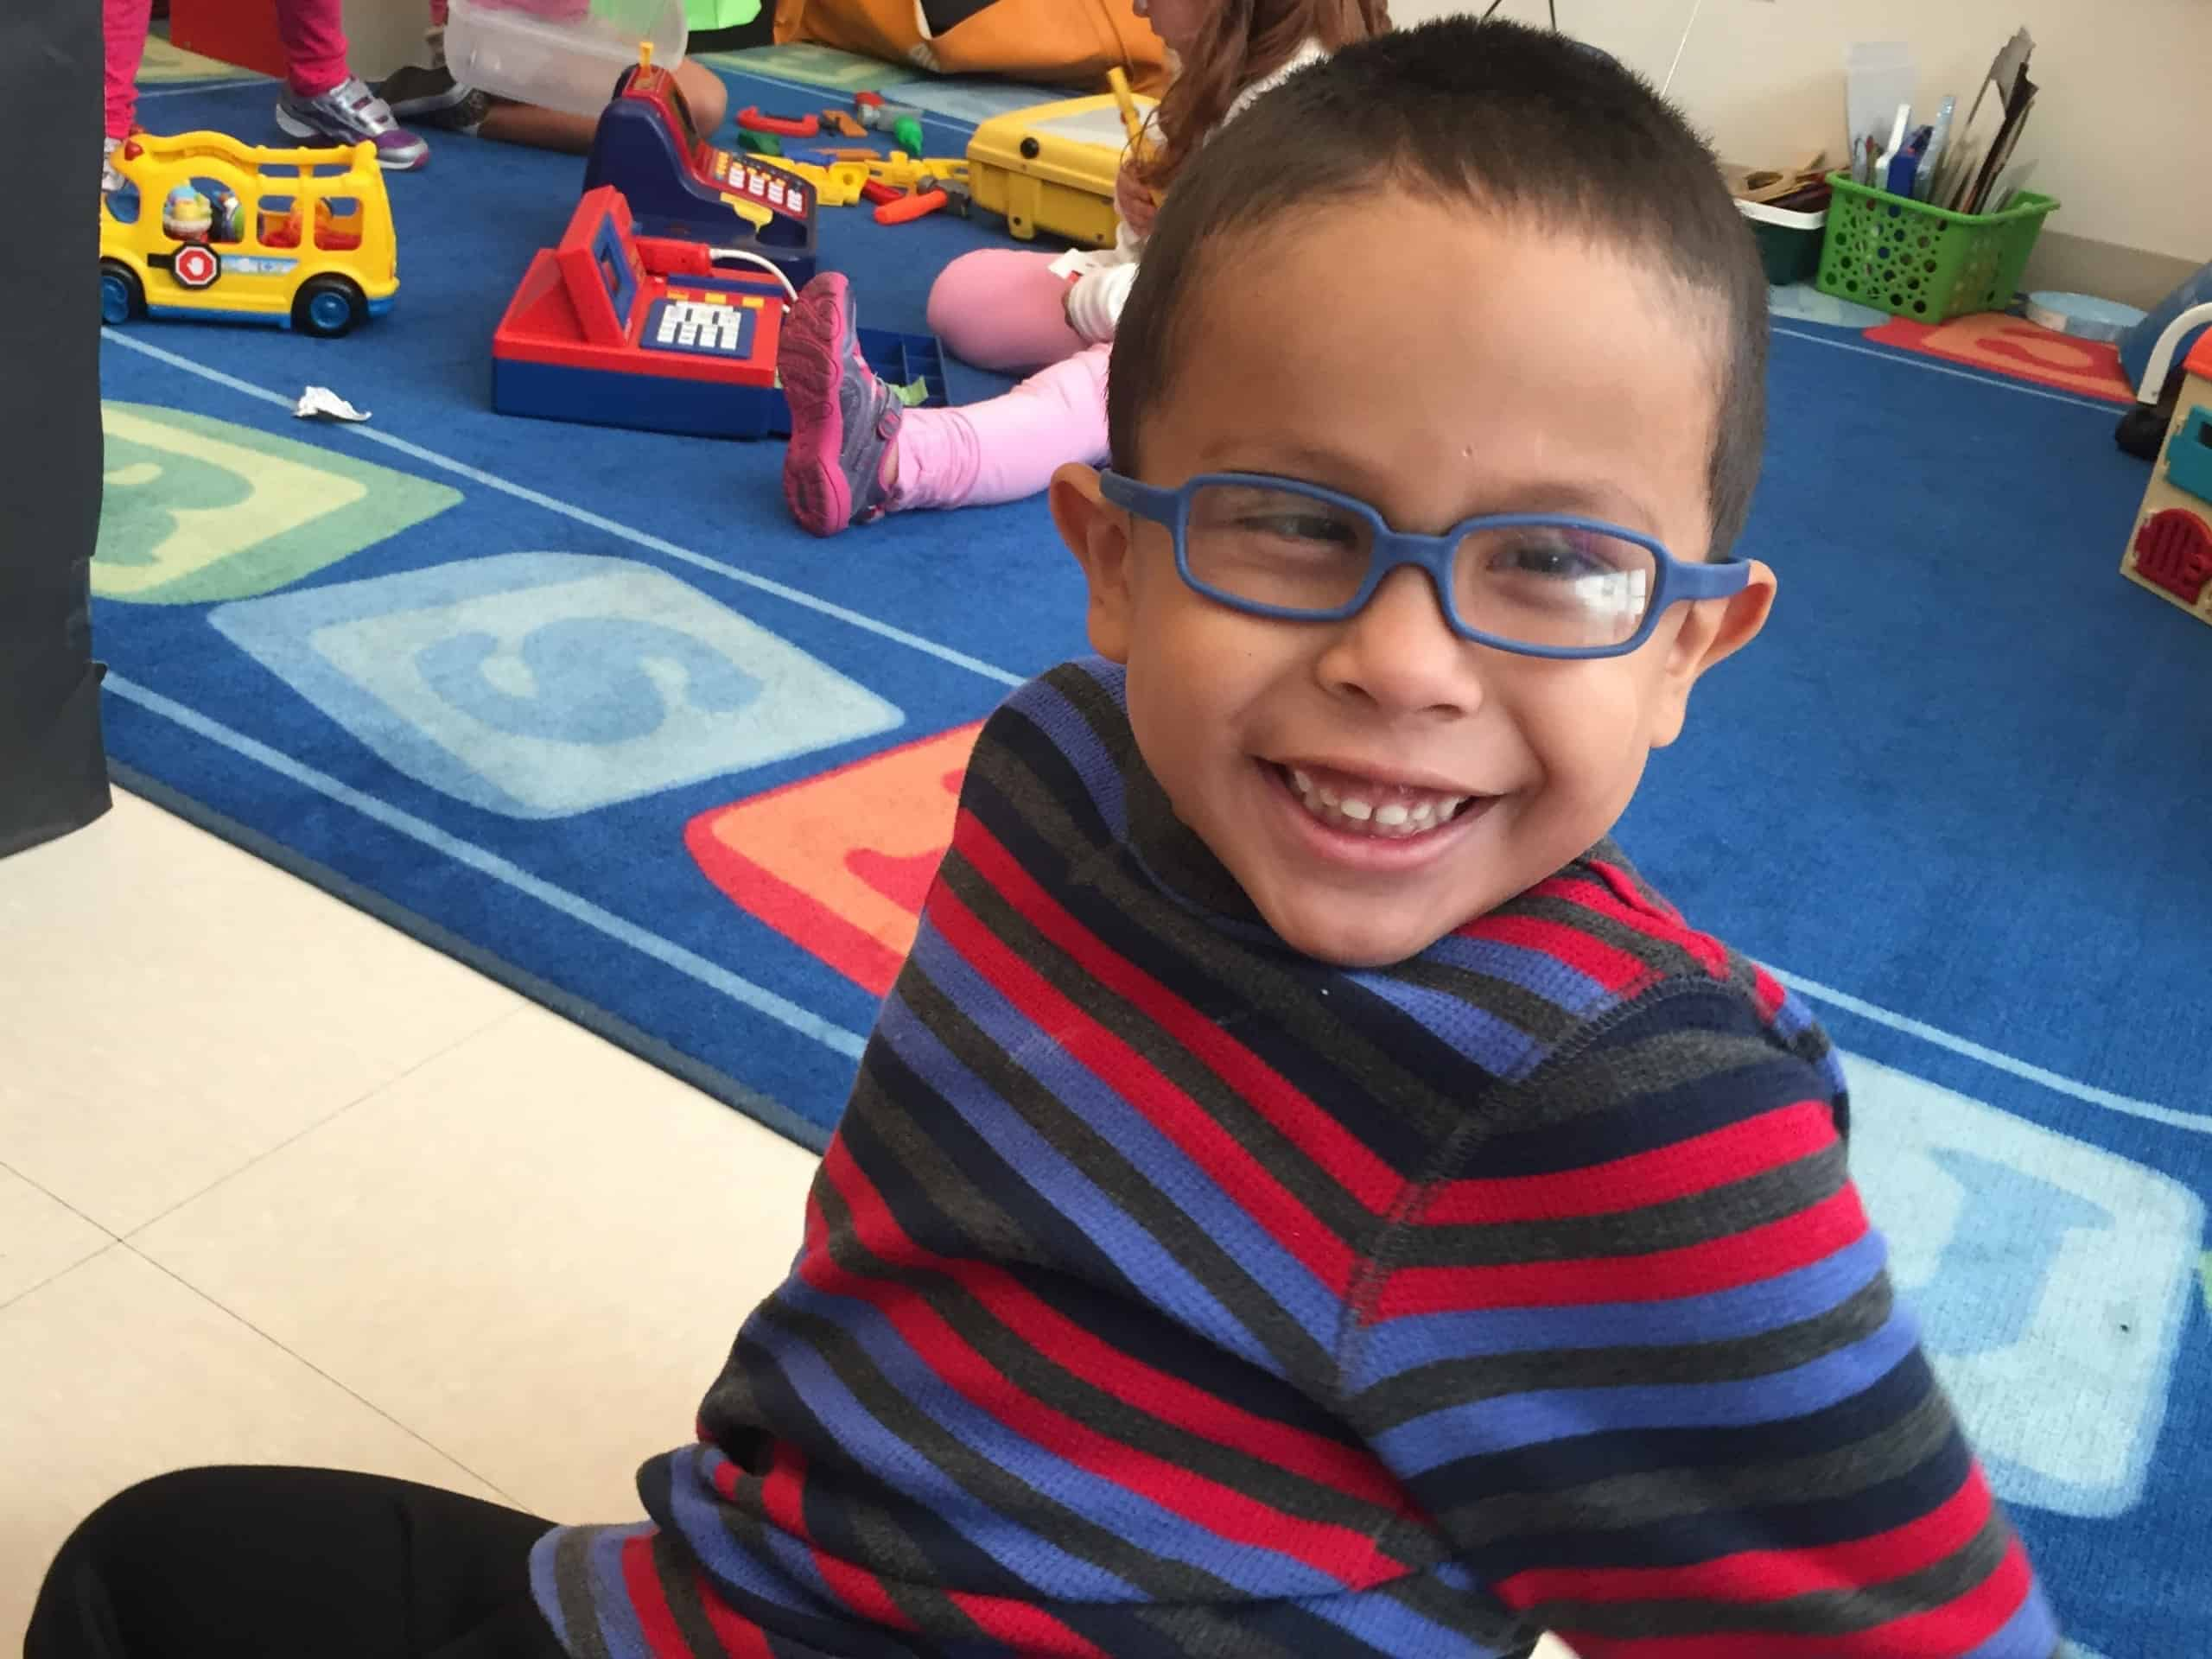 A young boy with glasses smiles at the camera and sits on the floor of his classroom